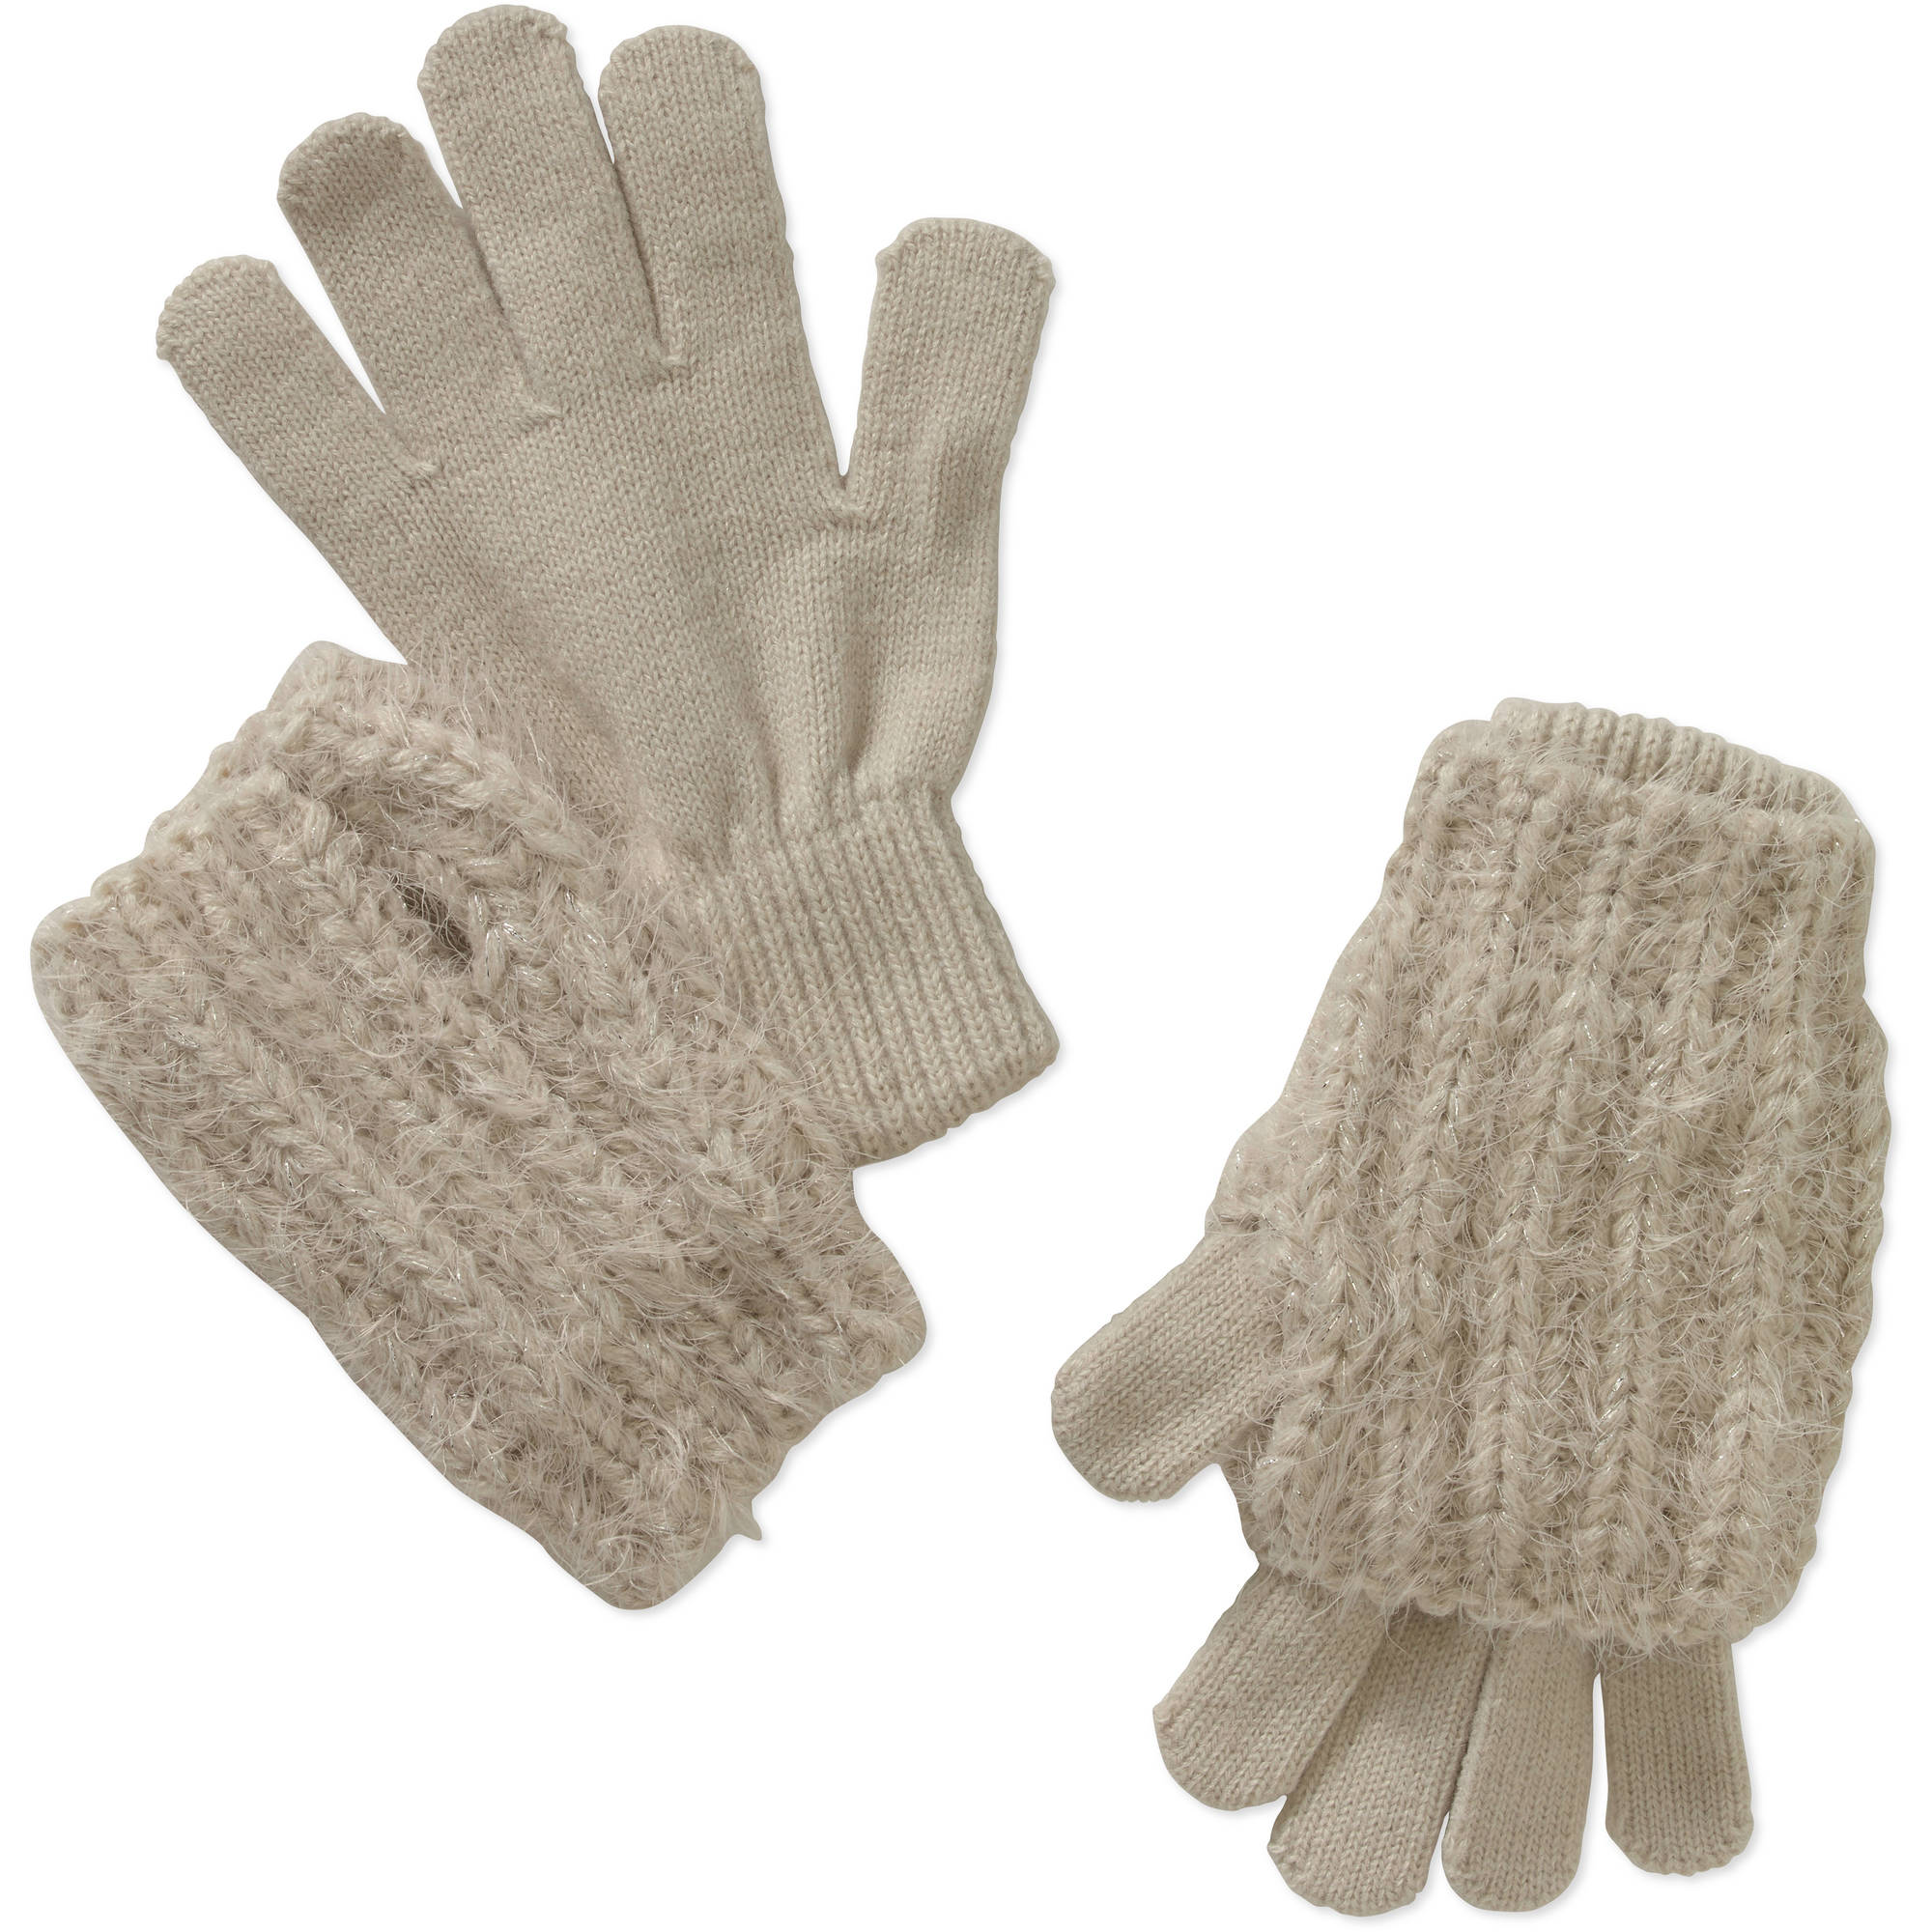 Faded Glory Women's Cozy Lurex 3-in-1 Gloves